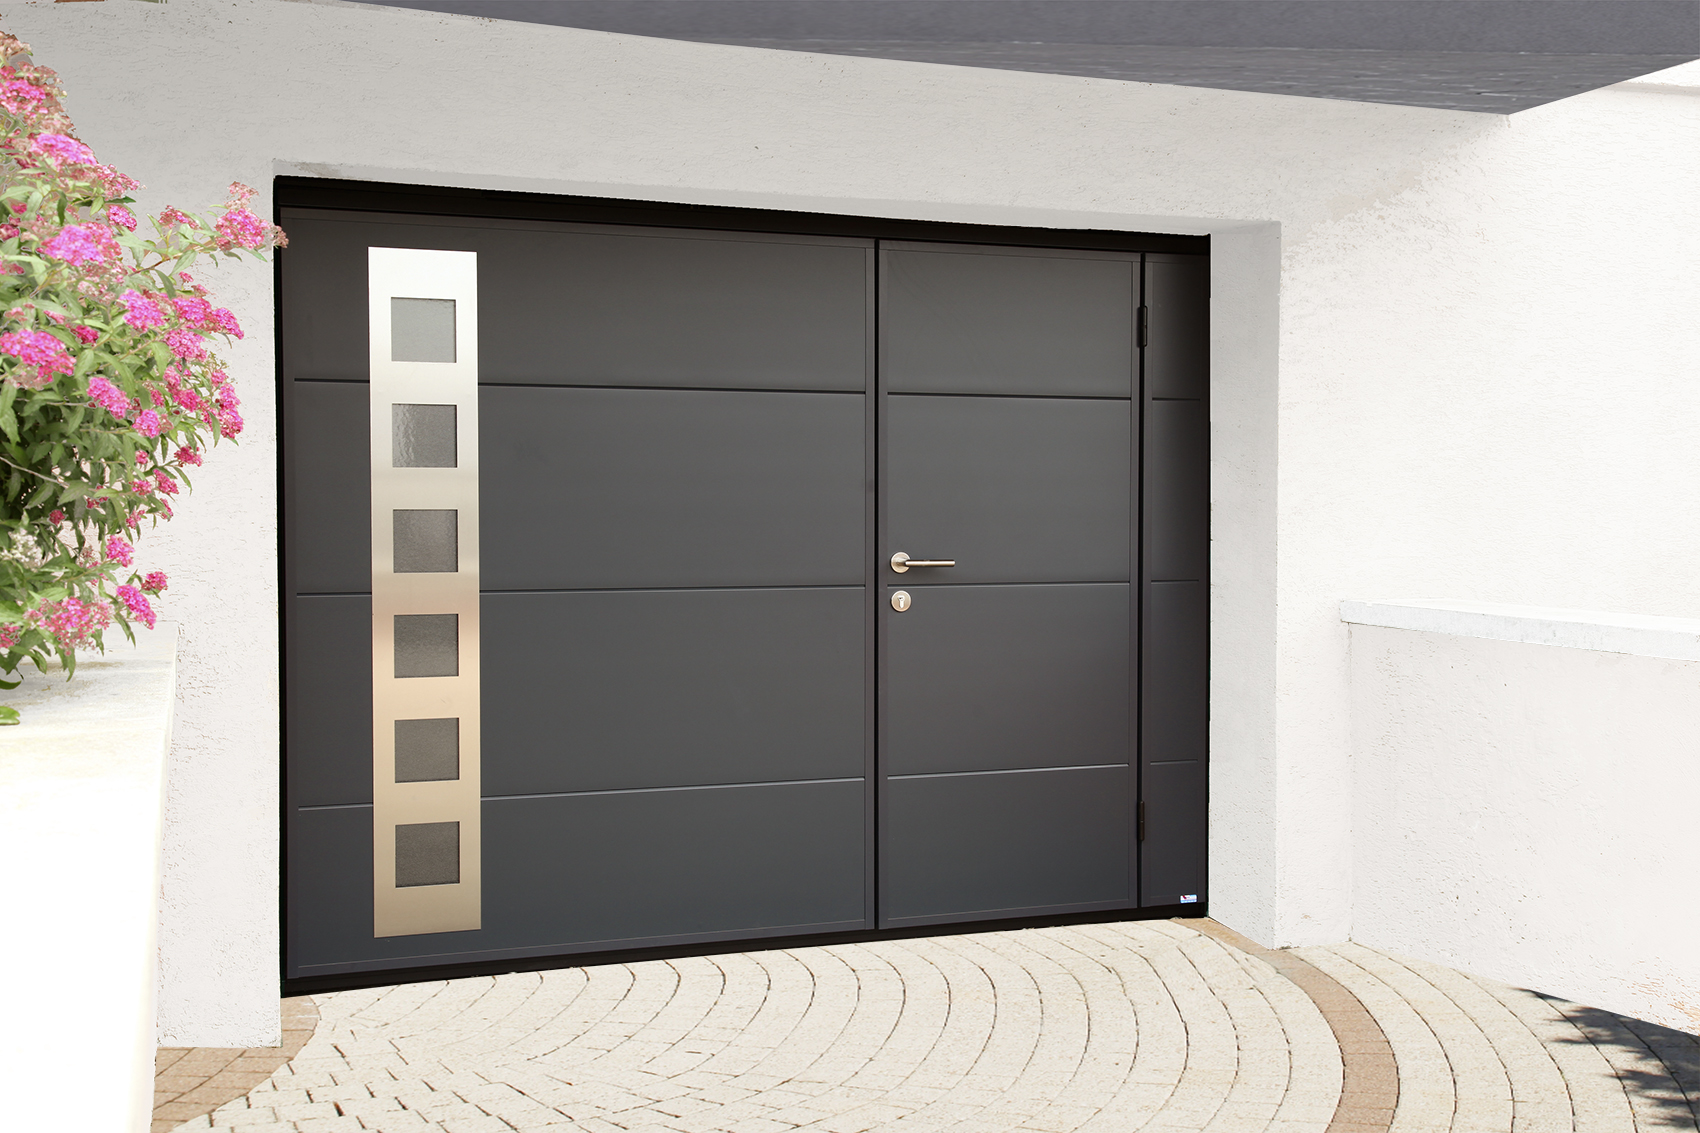 Pose de porte de garage sur mesure motoris e ou manuelle for Porte de garage sectionnelle a portillon